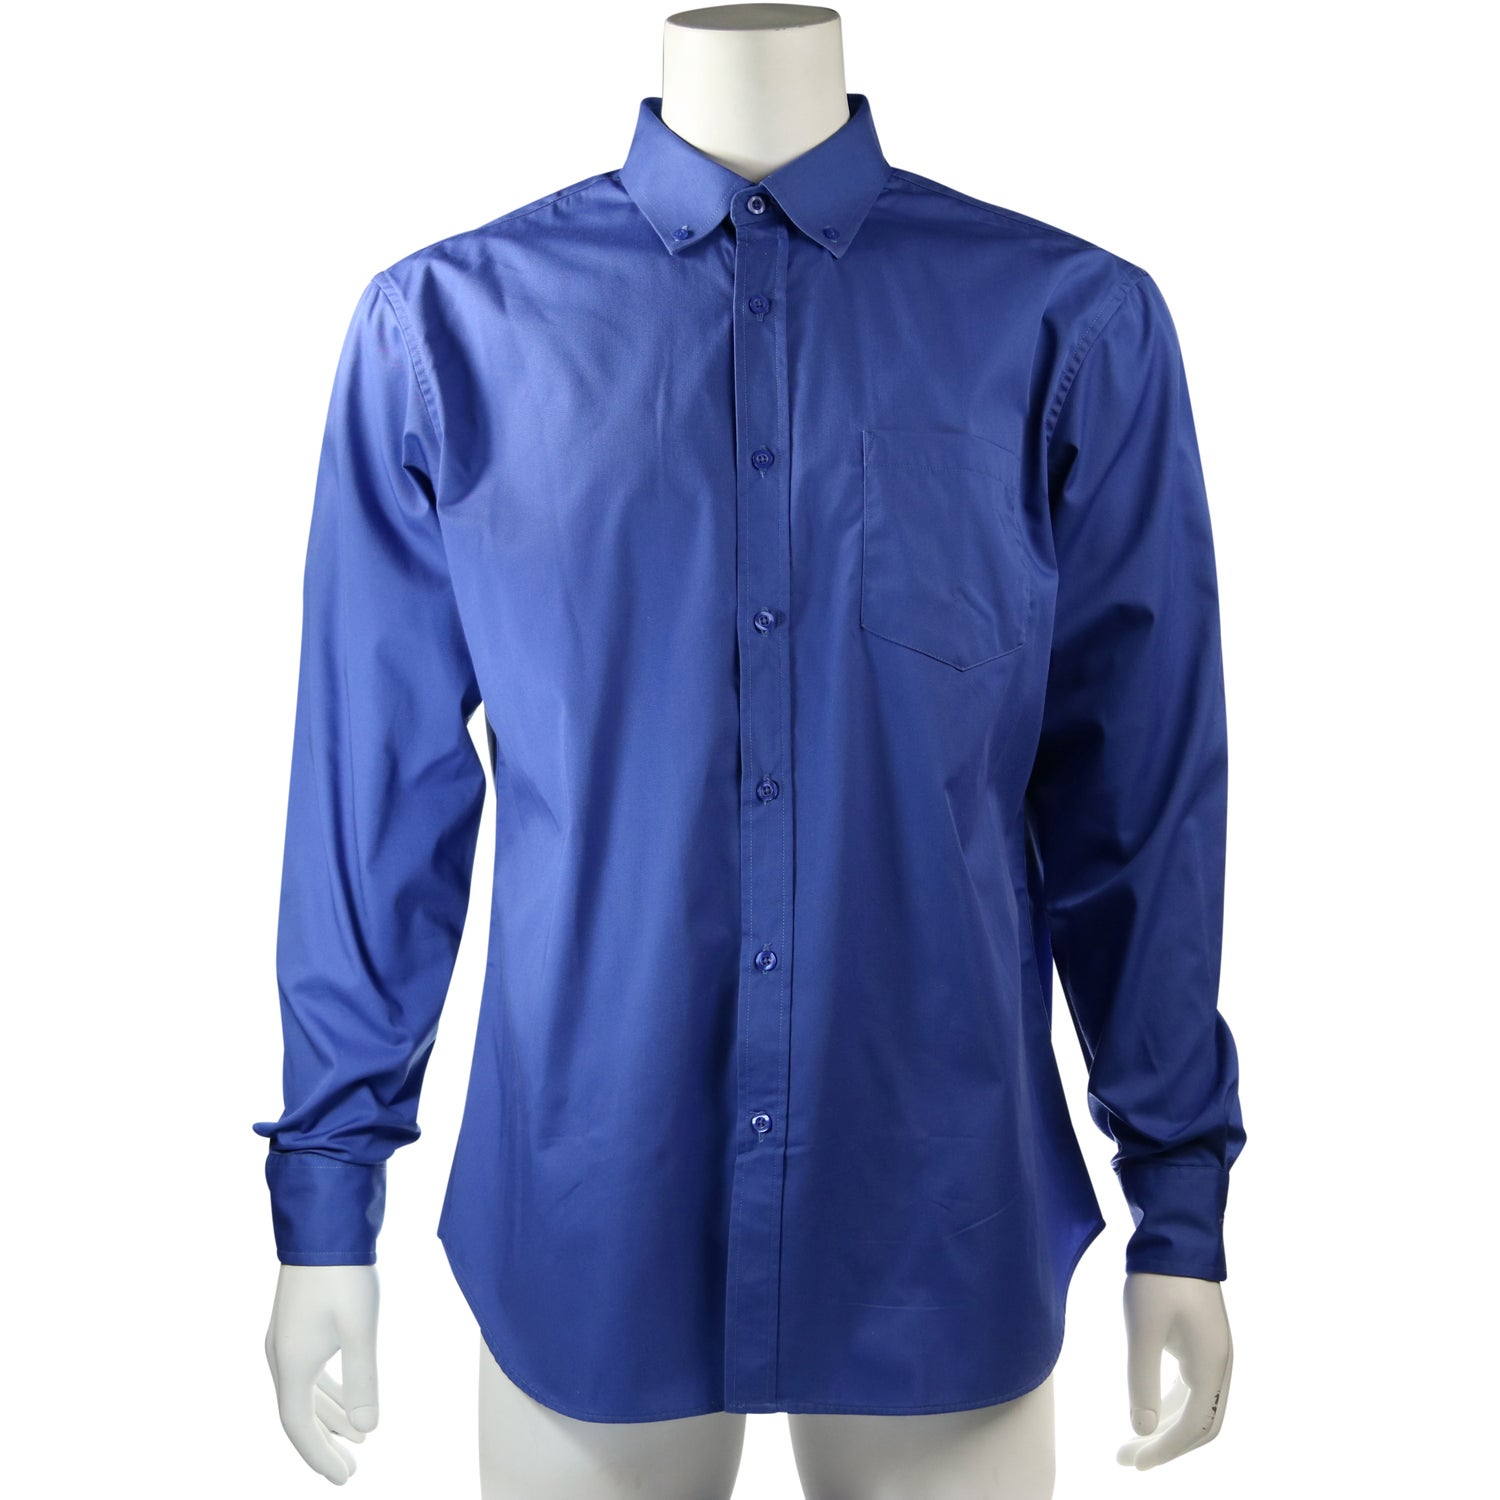 Wilshire Long Sleeve Shirt by TRIMARK (Men's)